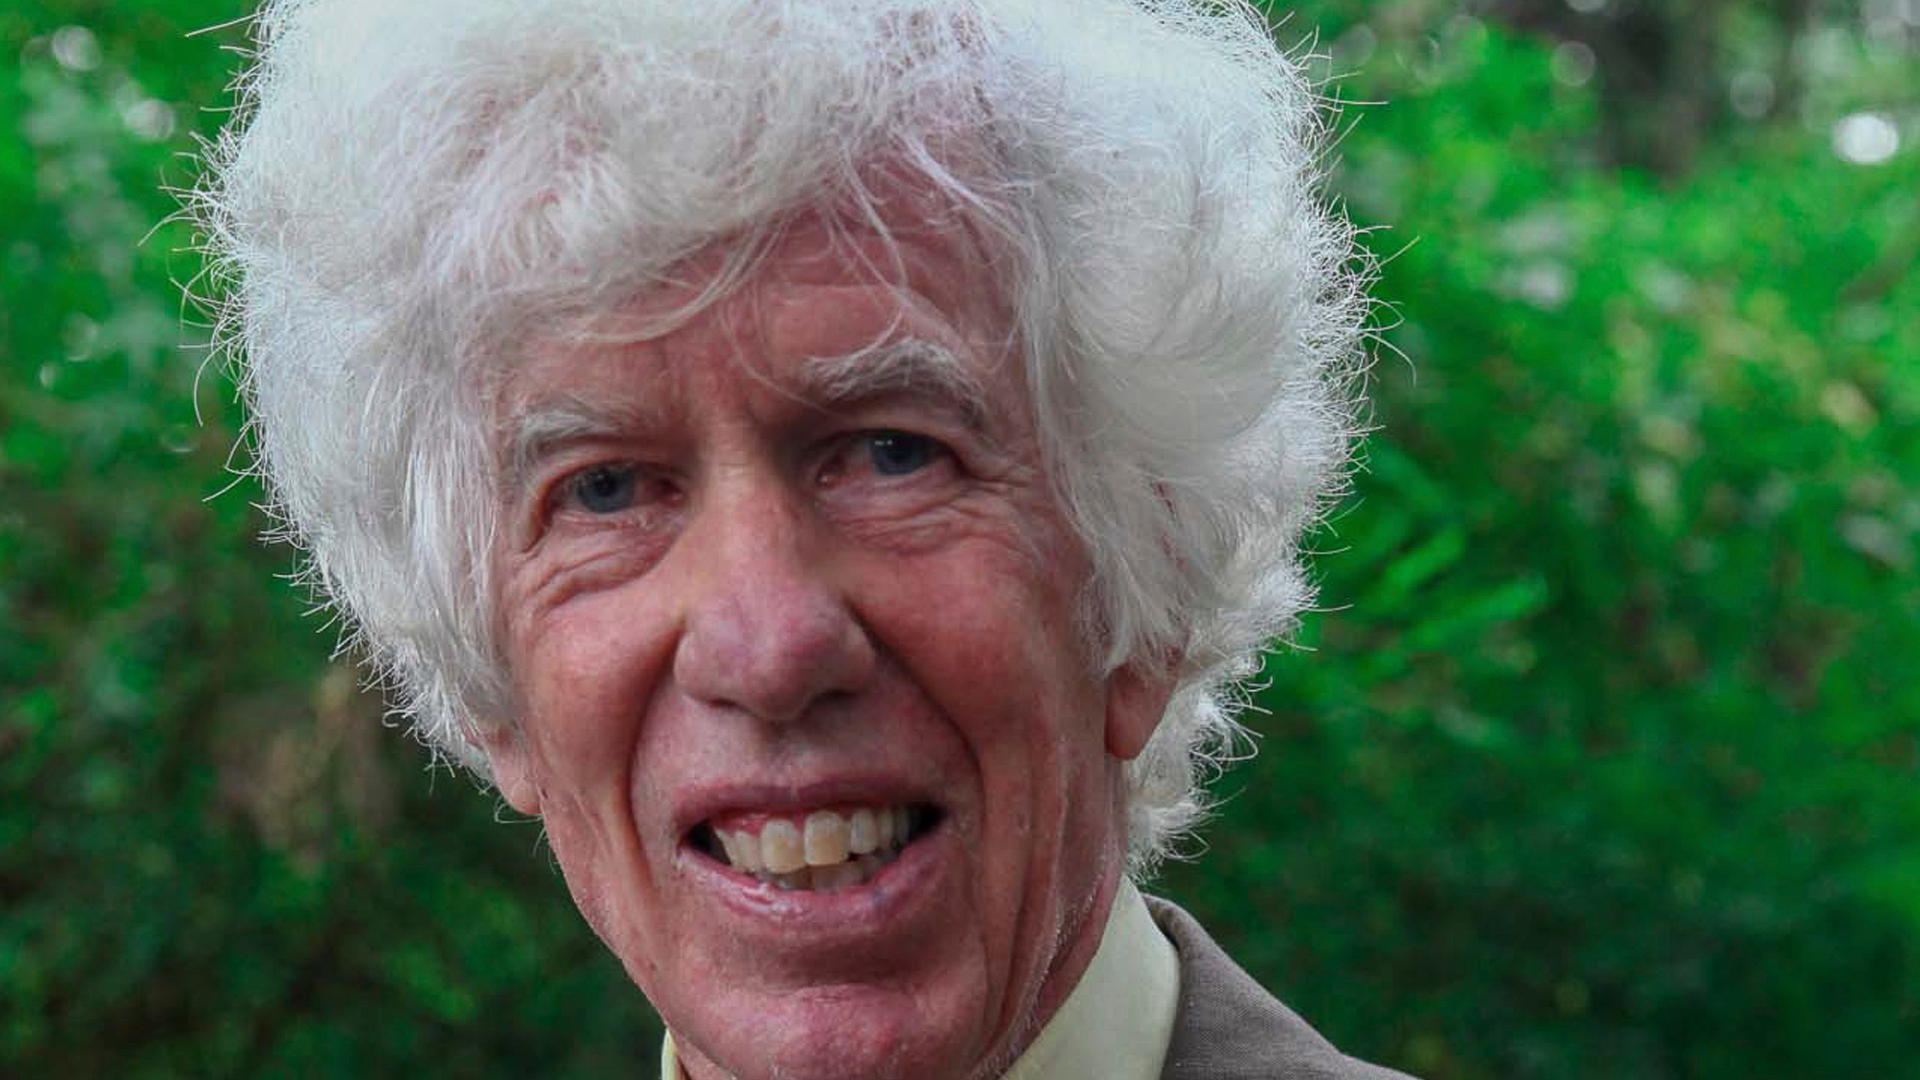 An American spent decades exposing the ivory trade. He was just found dead in his home.